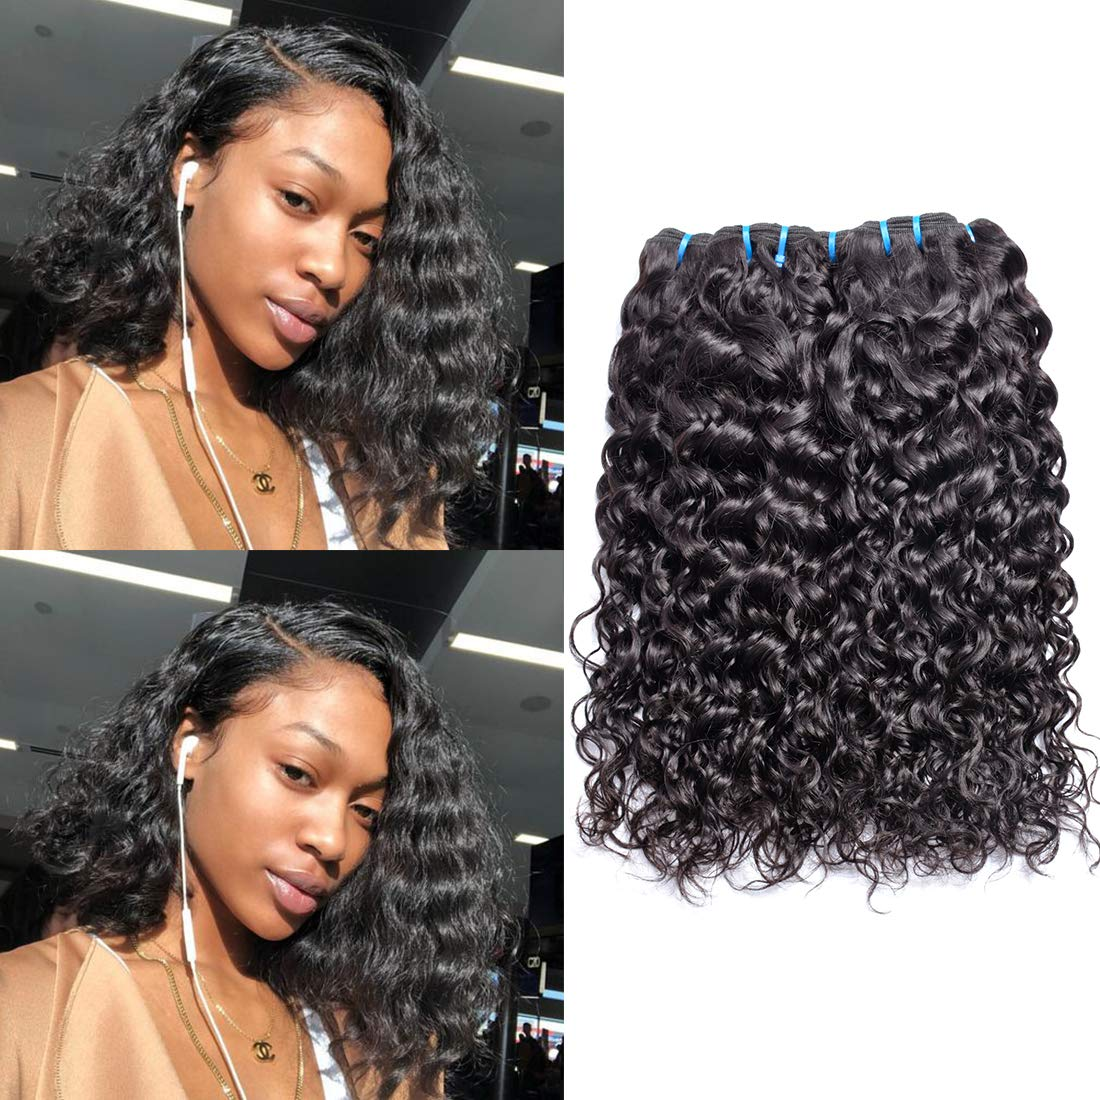 Ms Sunlight Hair Brazilian Water Wave Virgin Hair 3 Bundles 9a Wet And Wavy Human Hair Weave Bundles 100 Unprocessed Virgin Brazilian Human Hair Bundles Natural Color 10 10 10 Beauty Amazon Com